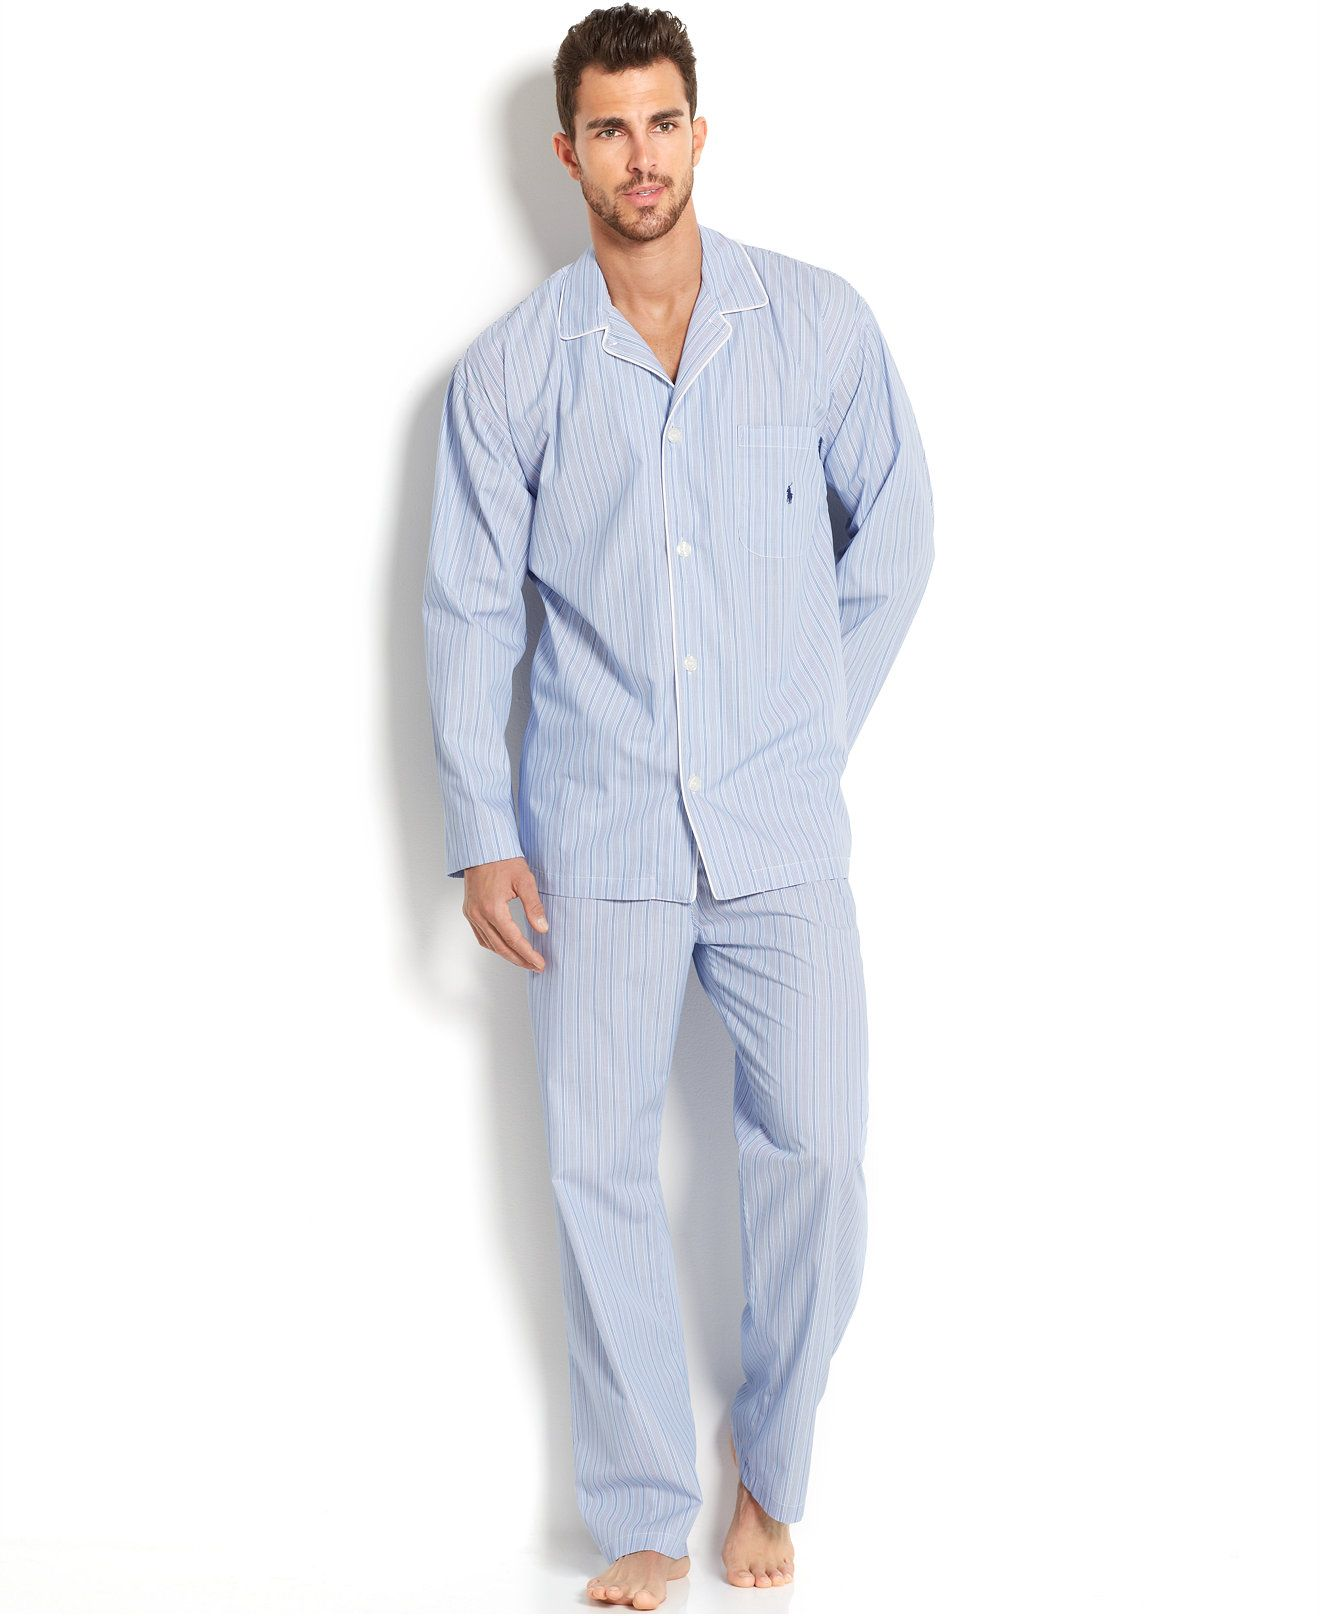 Yarn Weave 100% Cotton Pajama Set For Men Comfy Sleepwear Pajamas Mens Sexy Modern Style Soft Cozy Plus Size Nightgown Pyjamas Underwear & Sleepwears